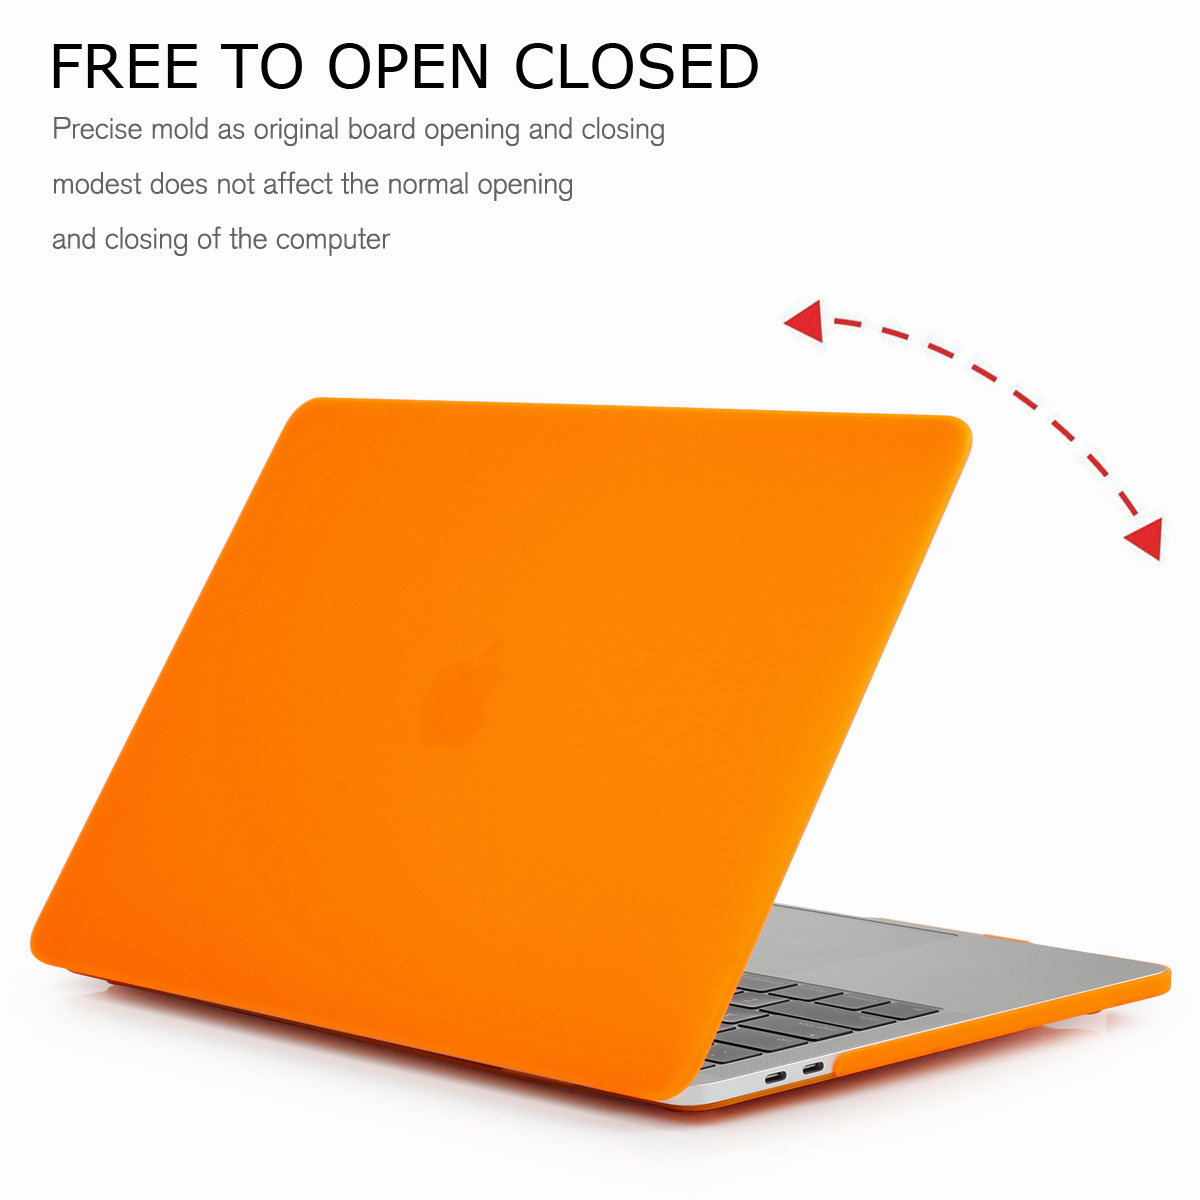 Shockproof-Rubberized-Matte-Hard-Case-Cover-For-Macbook-13-034-15-034-Inch-A1286-A1278 thumbnail 26